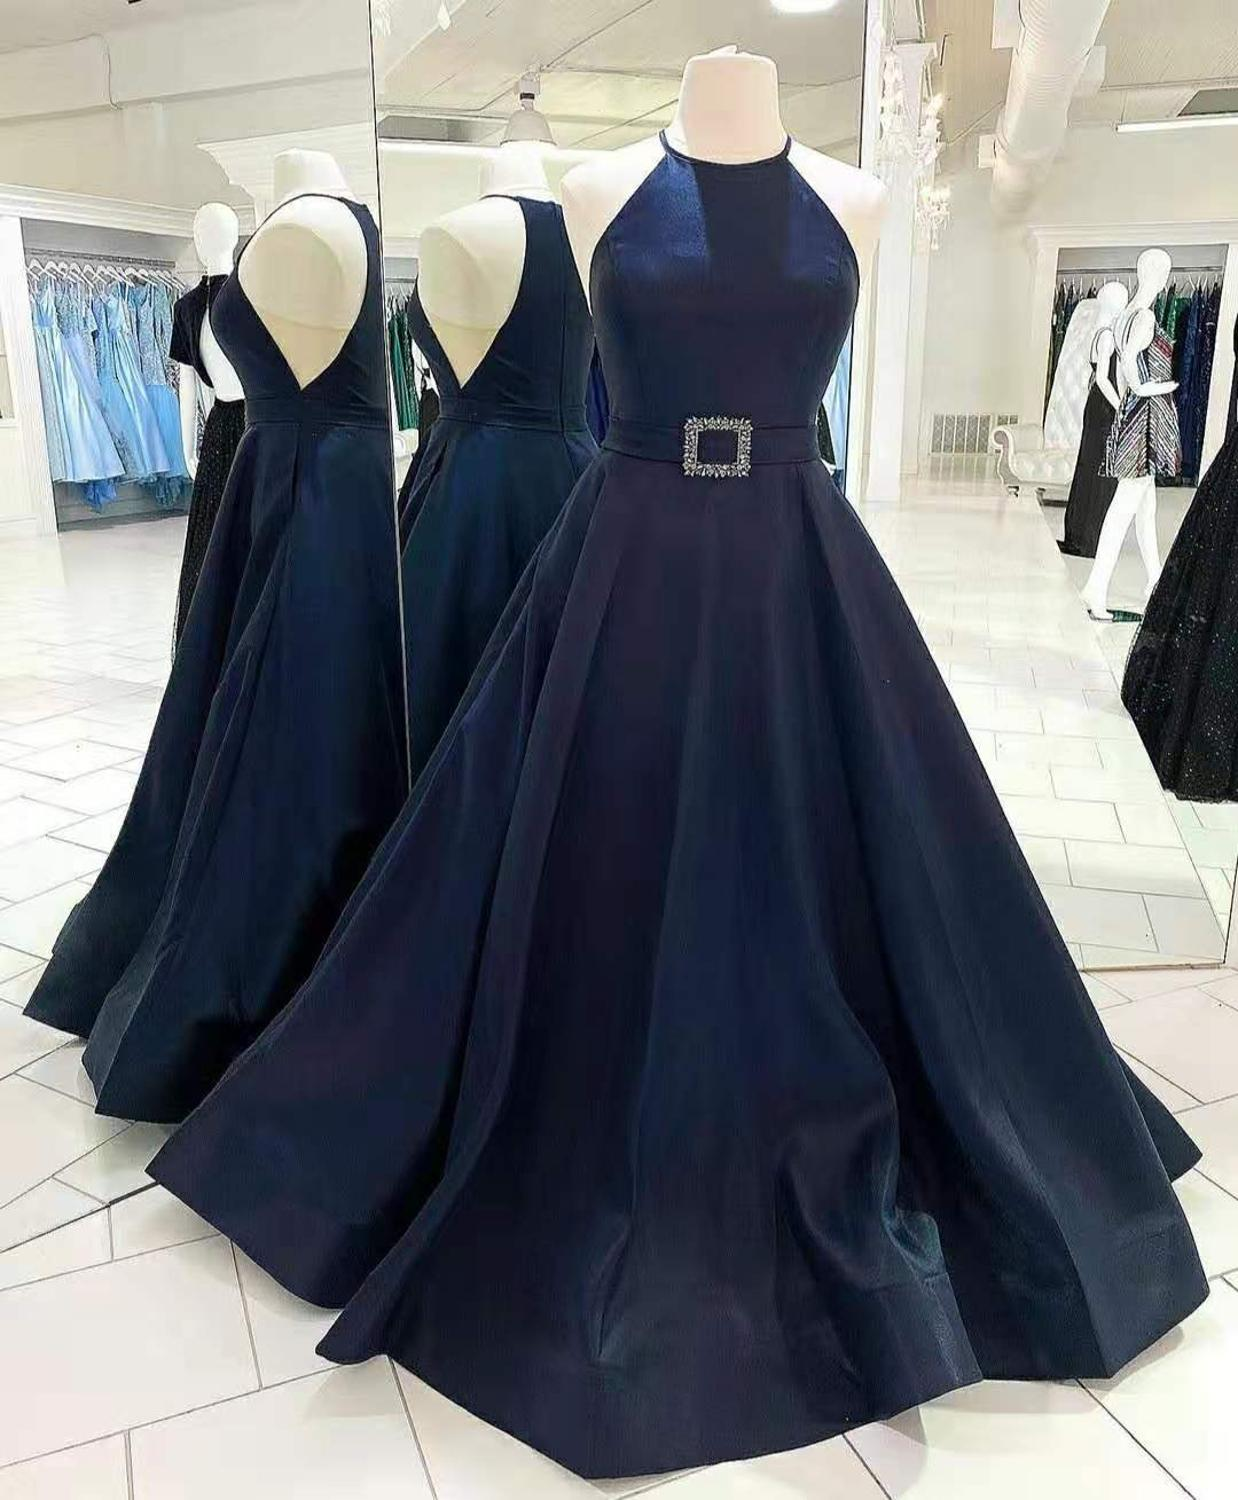 Sexy A-Line Halter Long Satin Evening Dresses with Pockets Floor Length Zipper Back Navy Blue Formal Party Dress for Women